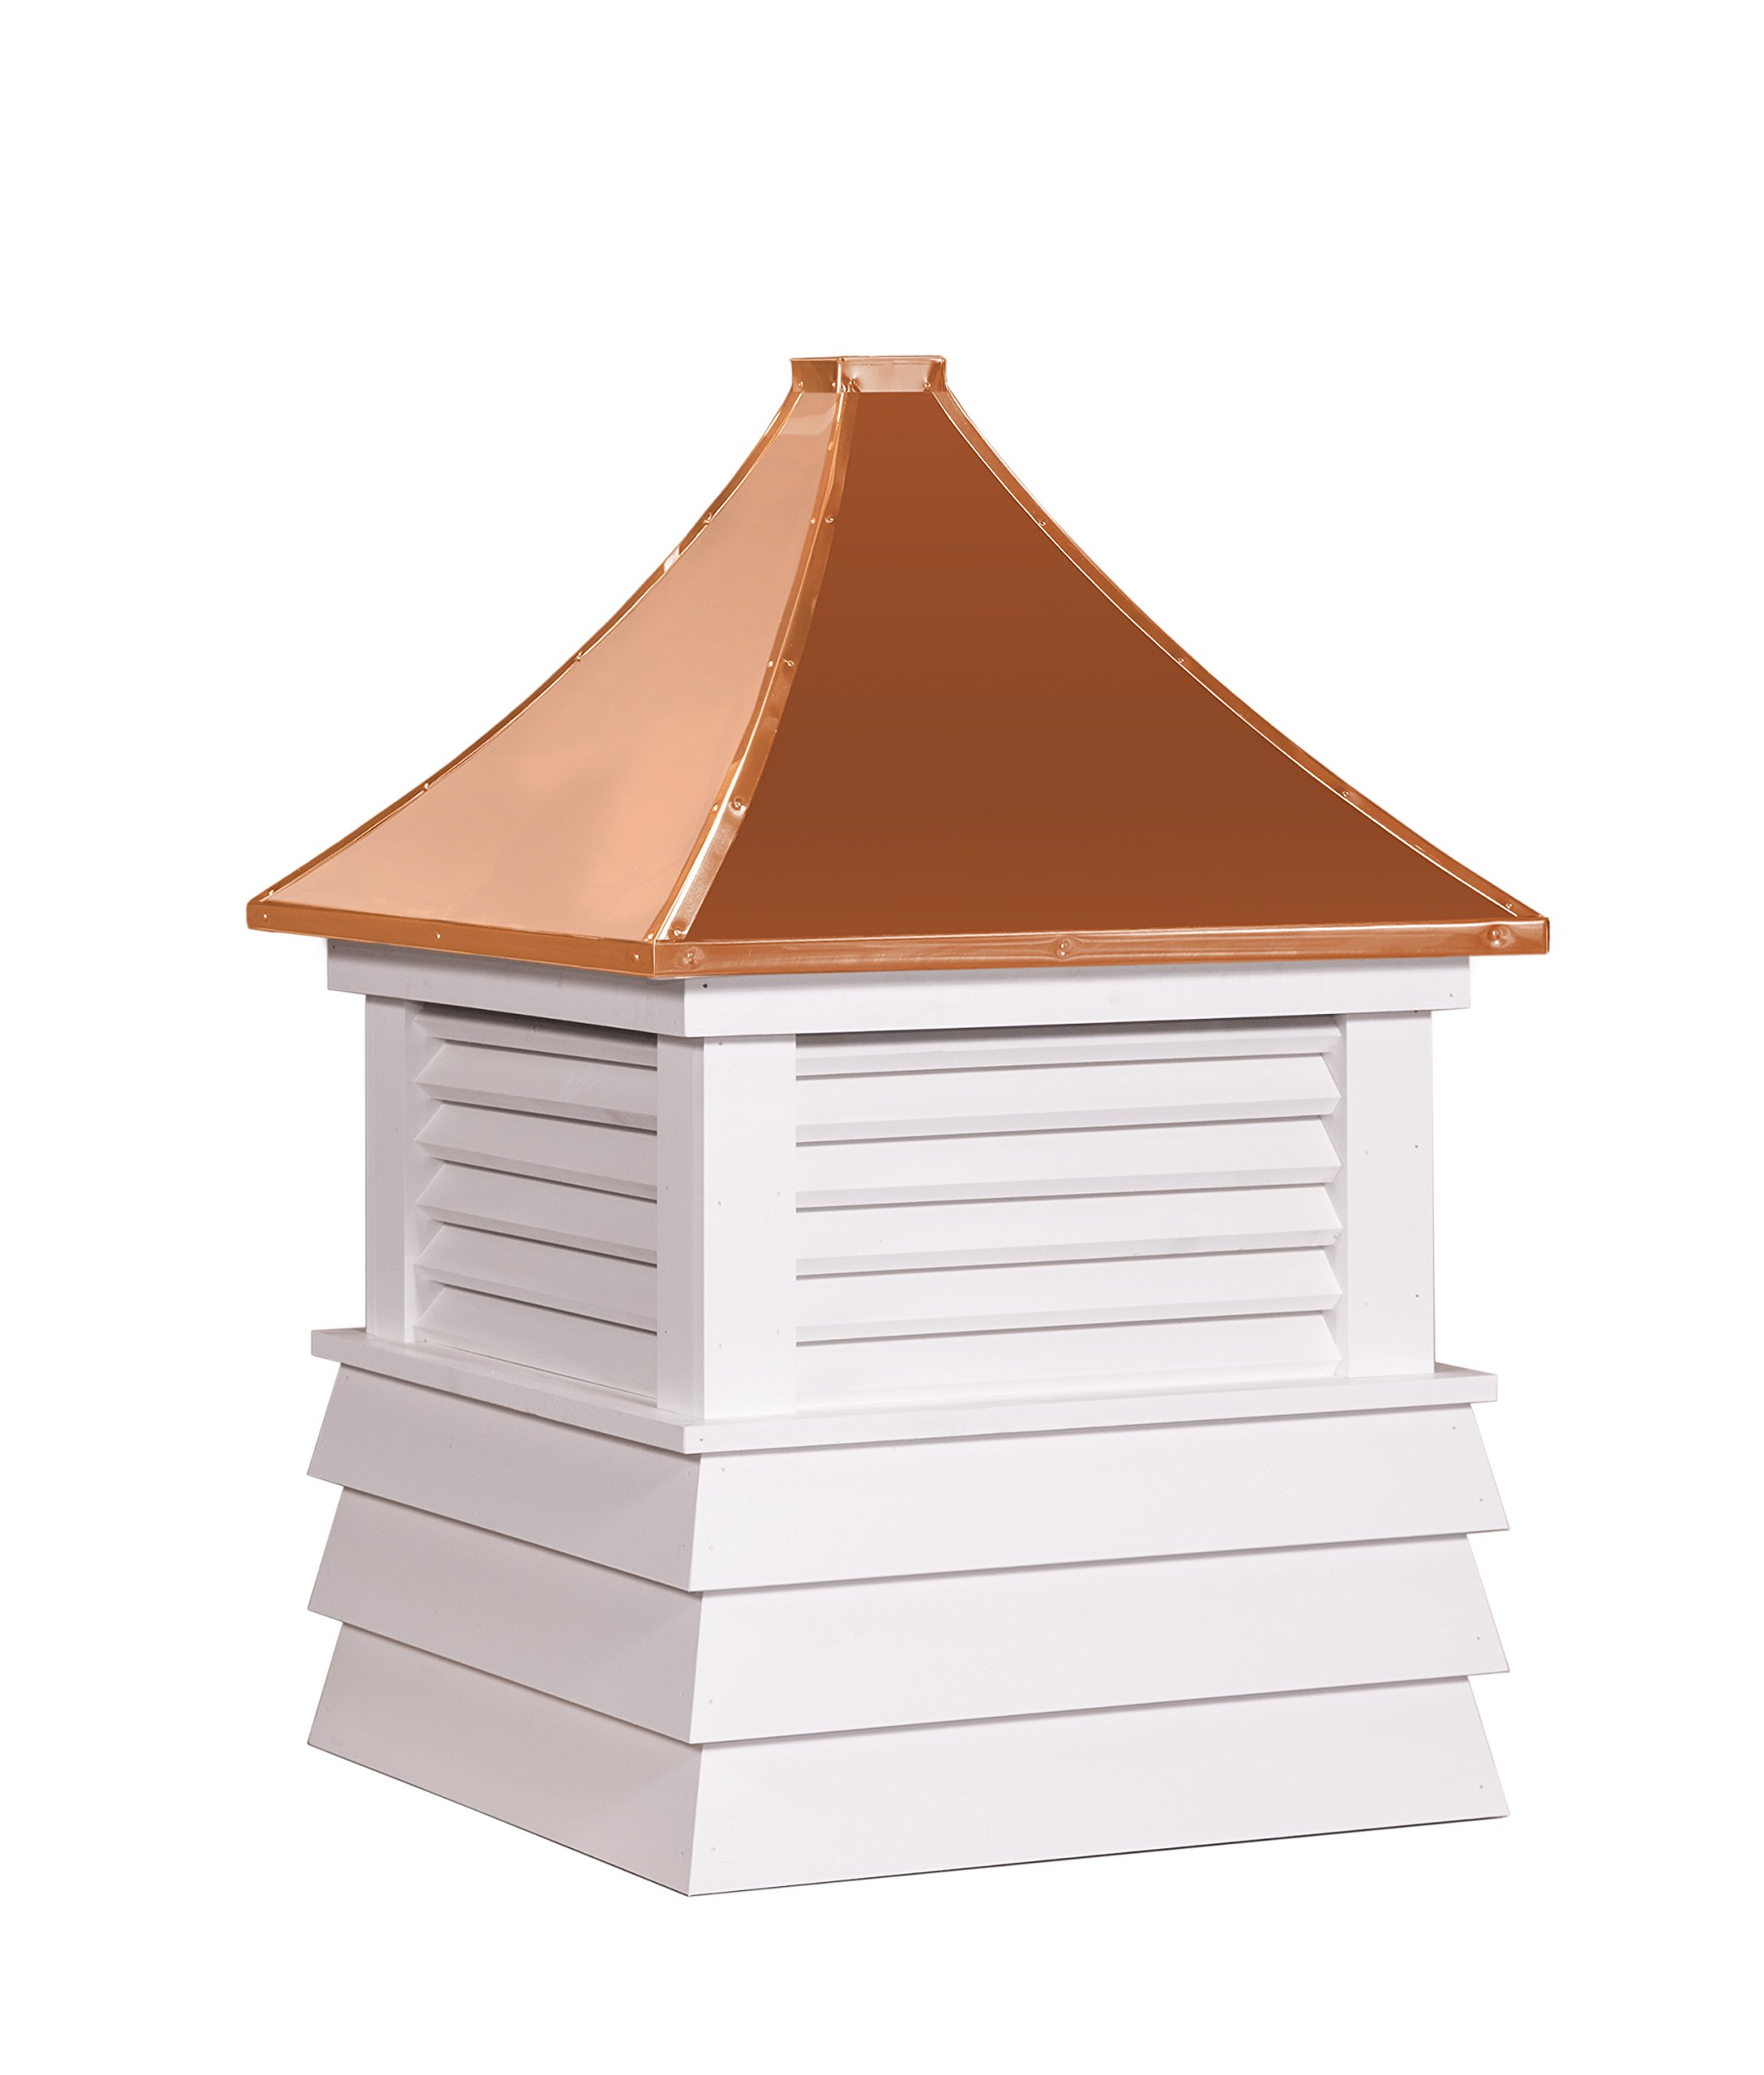 East Coast Weathervanes and Cupolas Vinyl Huntington Cupola (vinyl, 25 in square x 36 in tall) by East Coast Weathervanes and Cupolas